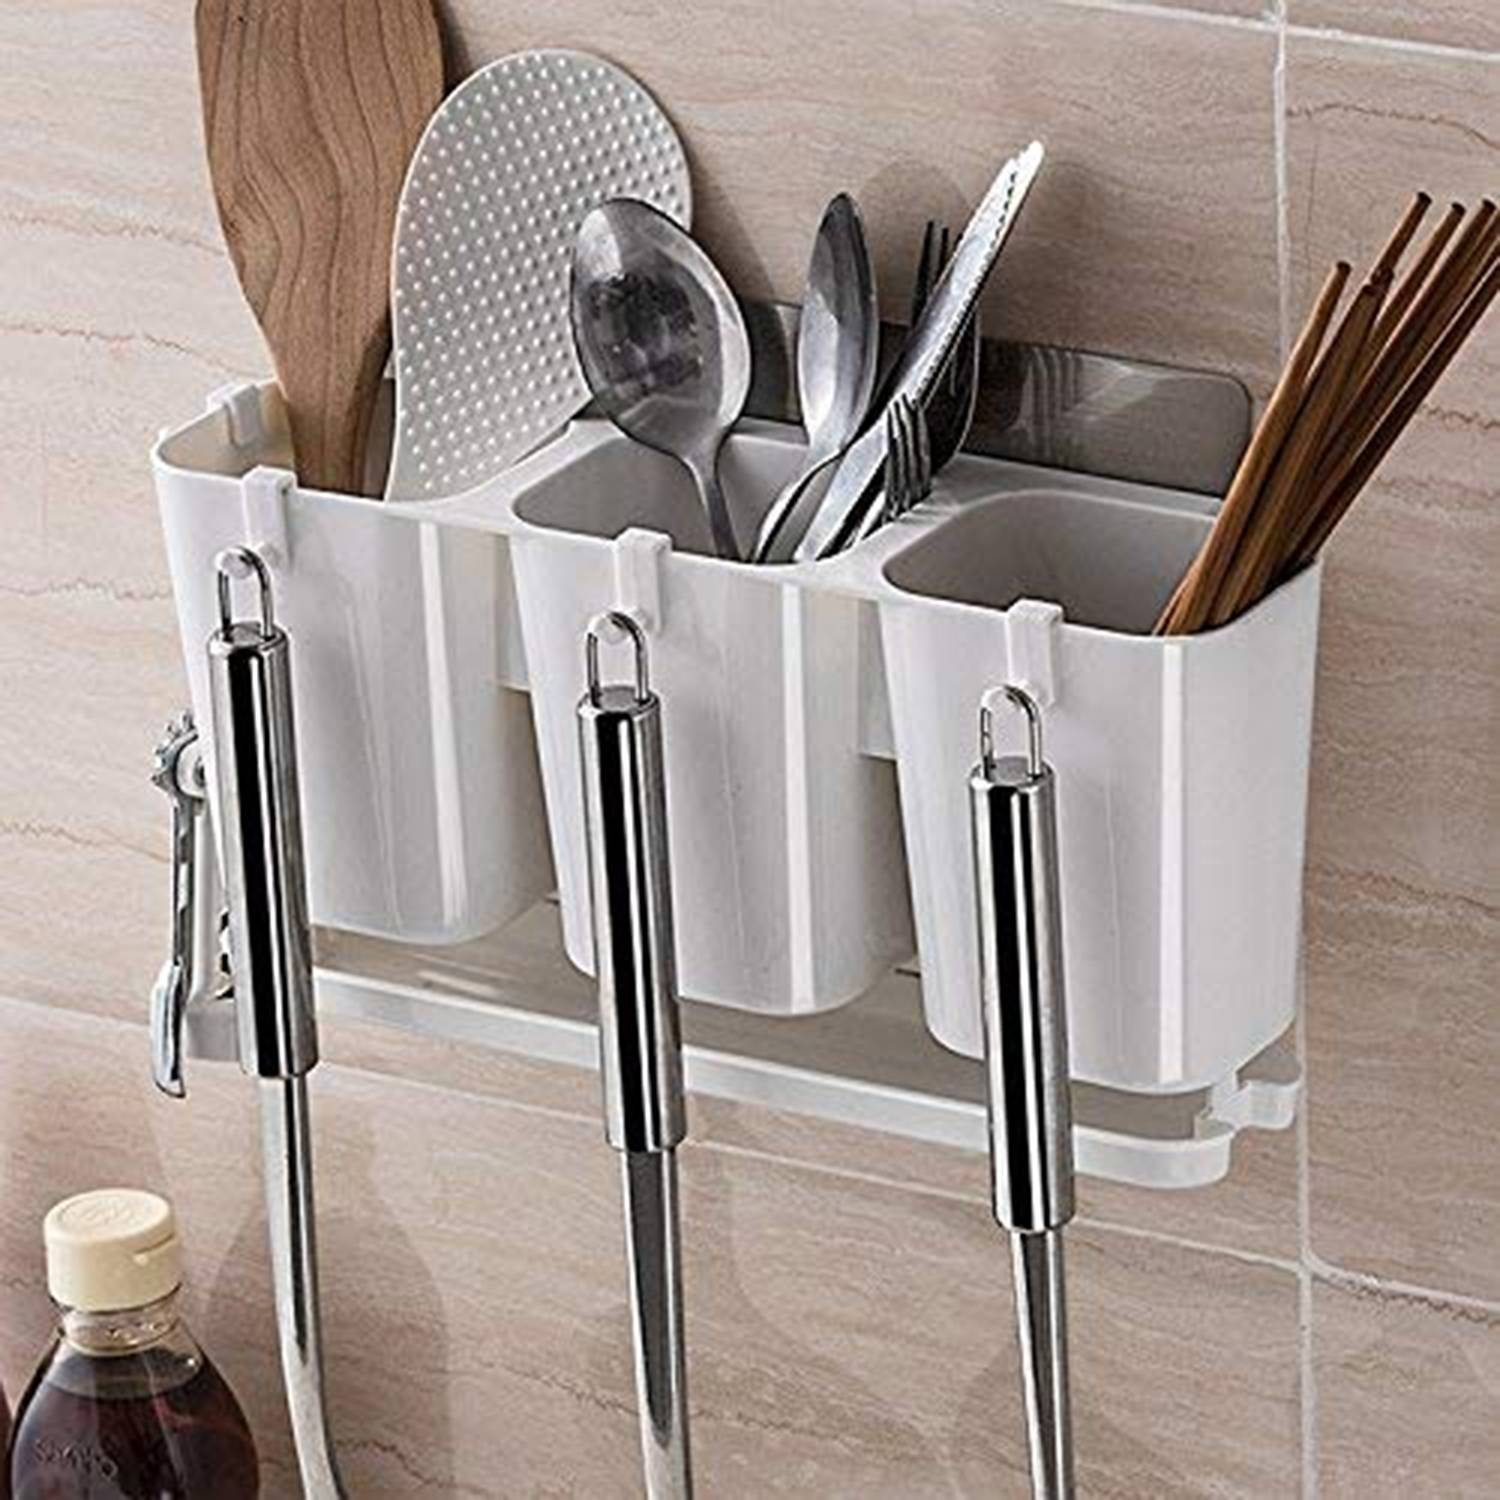 AND006911. Cutlery Holder with Drip Tray